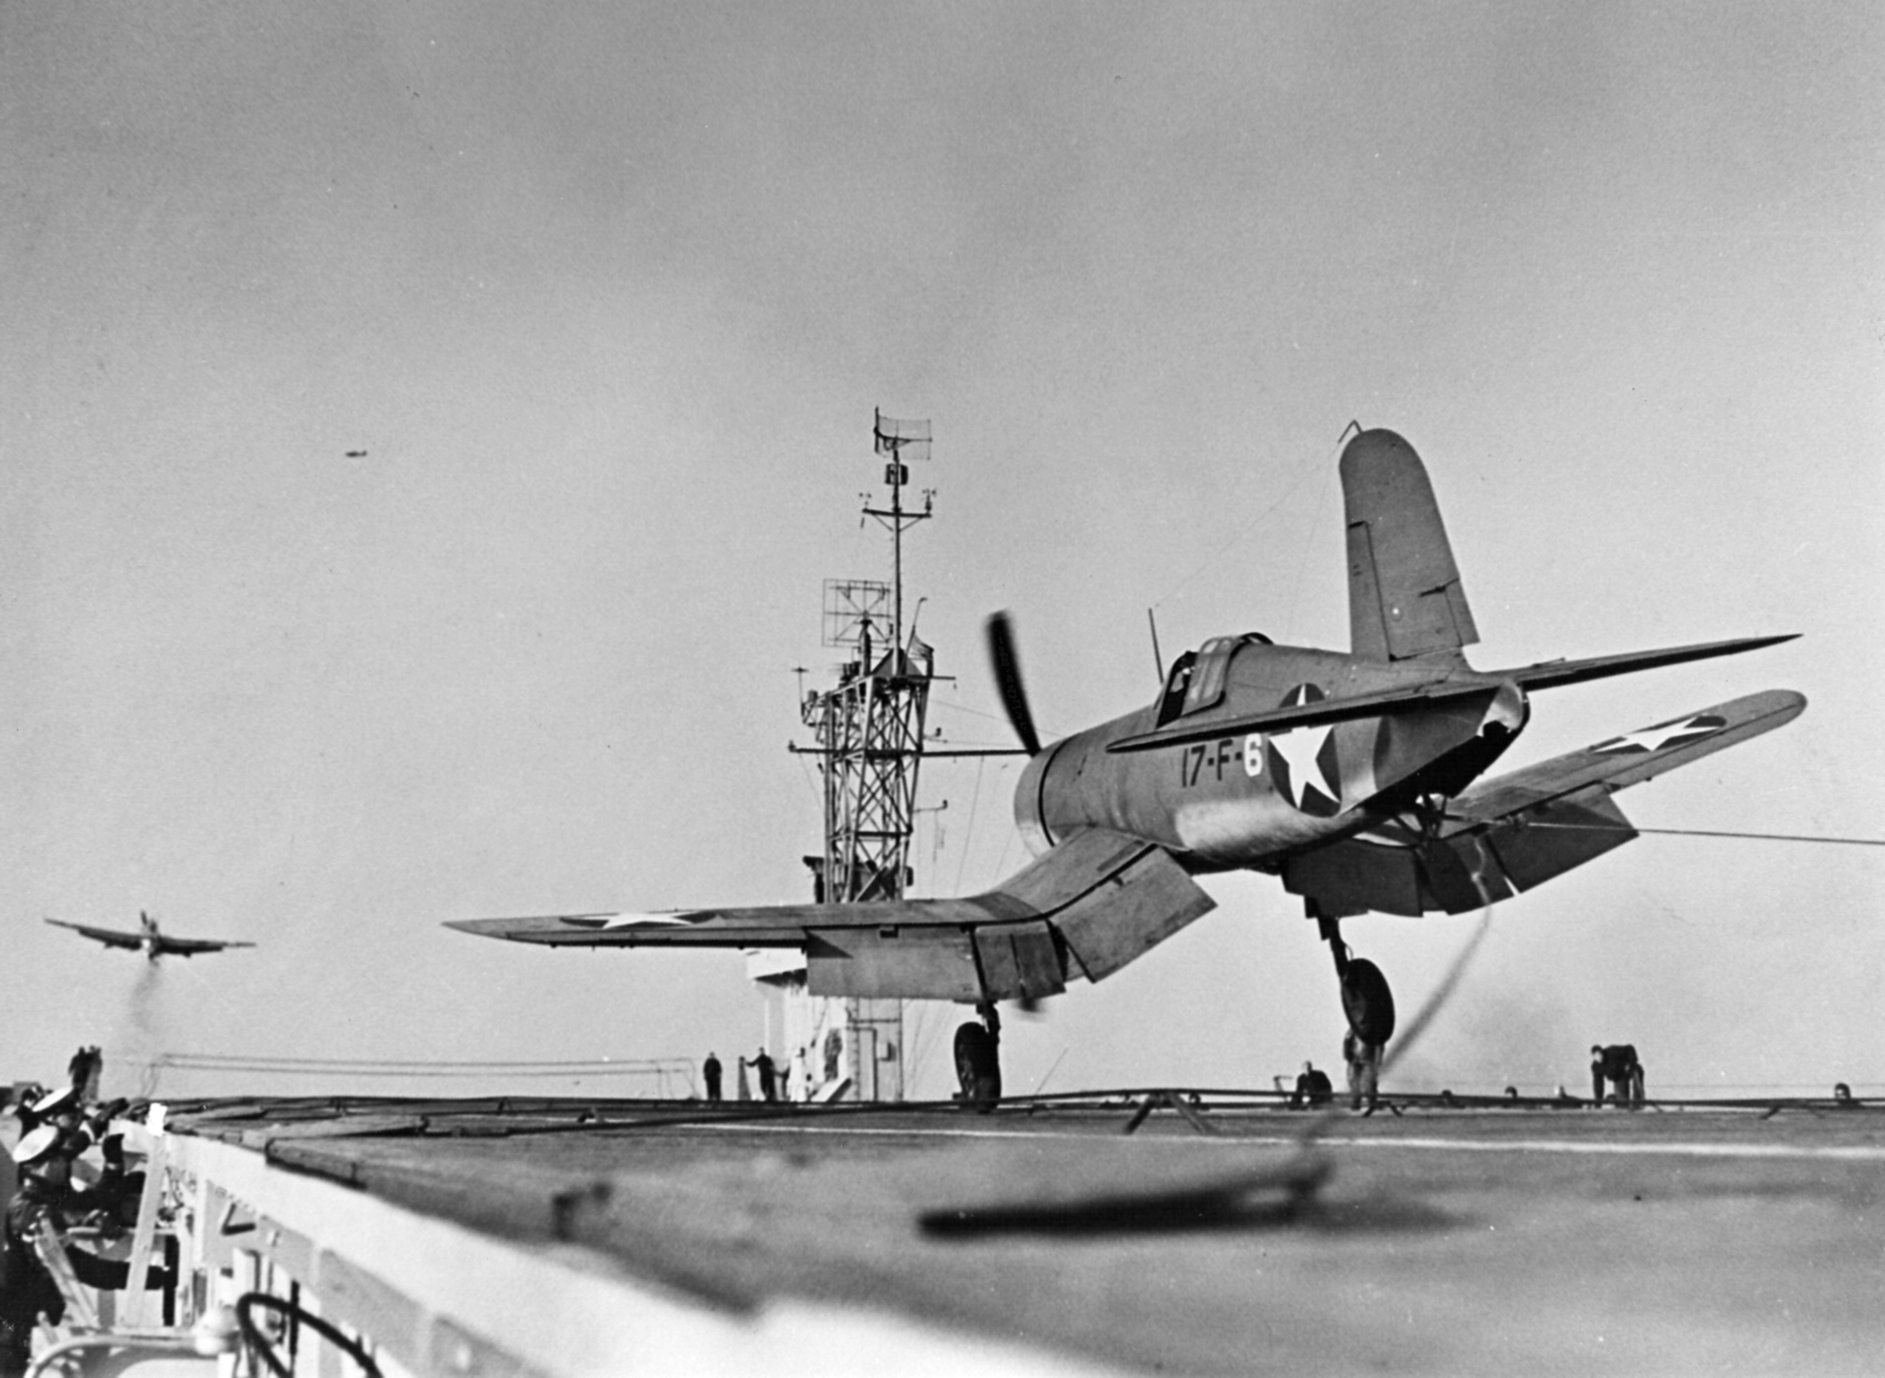 http://upload.wikimedia.org/wikipedia/commons/3/3a/F4U-1_VF-17_landing_on_USS_Charger_(CVE-30)_1943.jpeg